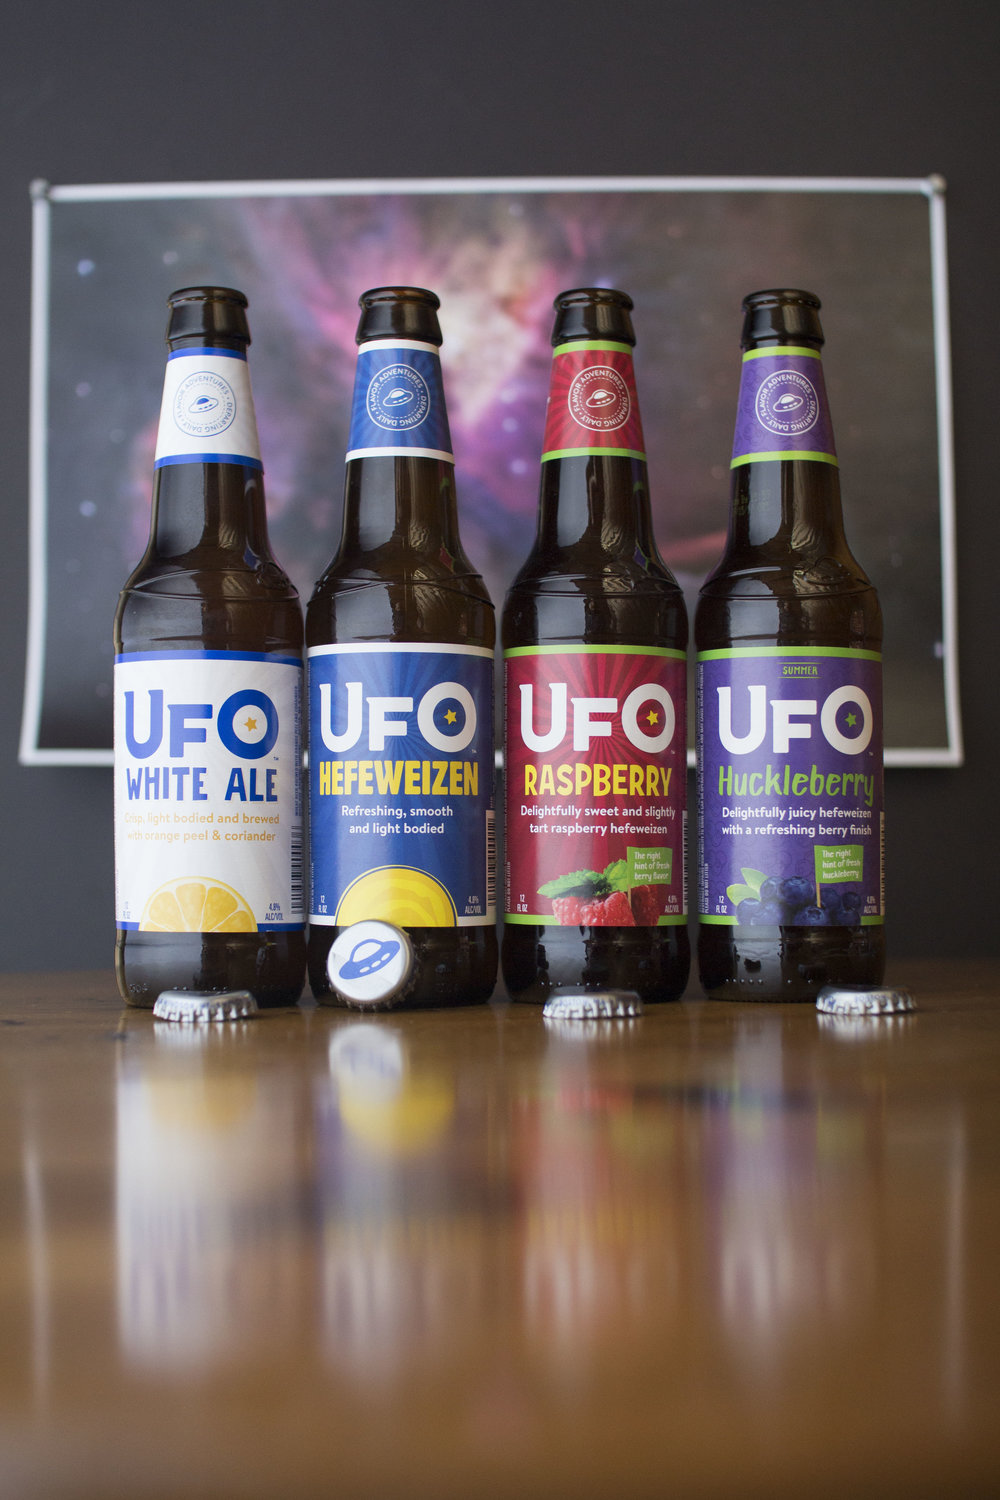 Rebranded bottle packaging, UFO beer, 2017. Photo courtesy of Harpoon Brewery.